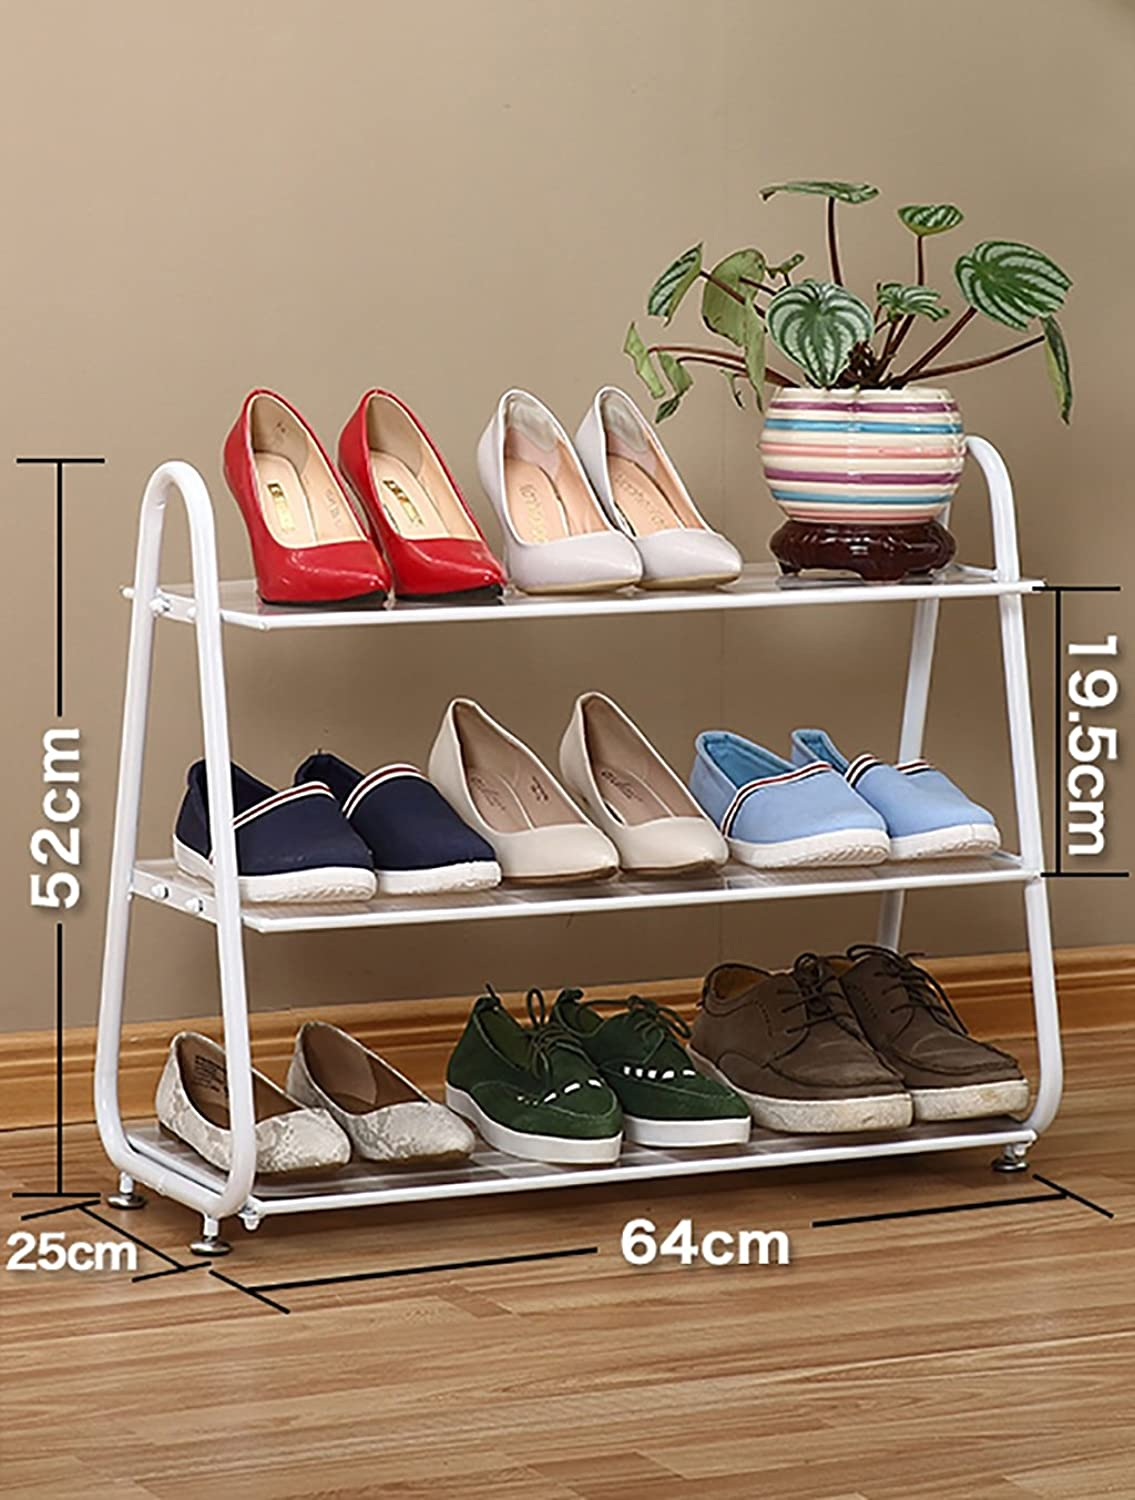 shoes Bench Organizing Rack shoes Rack, Home Storage Slippers Rack, Simple Modern Economic shoes, Multi-Functional Iron Shelf (color   White)